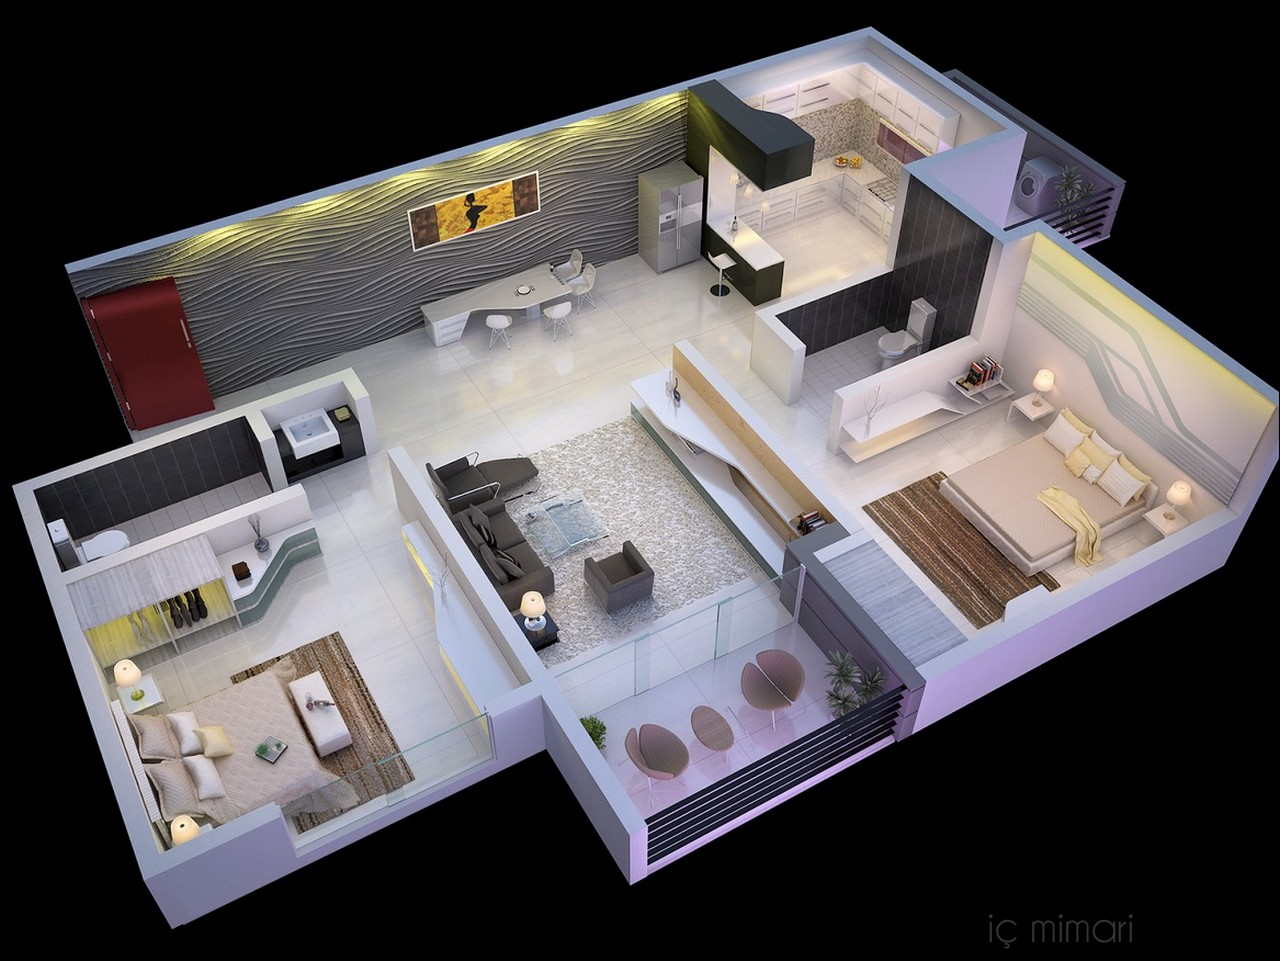 2 Bedroom ApartmentHouse Plans  Interior Design Ideas